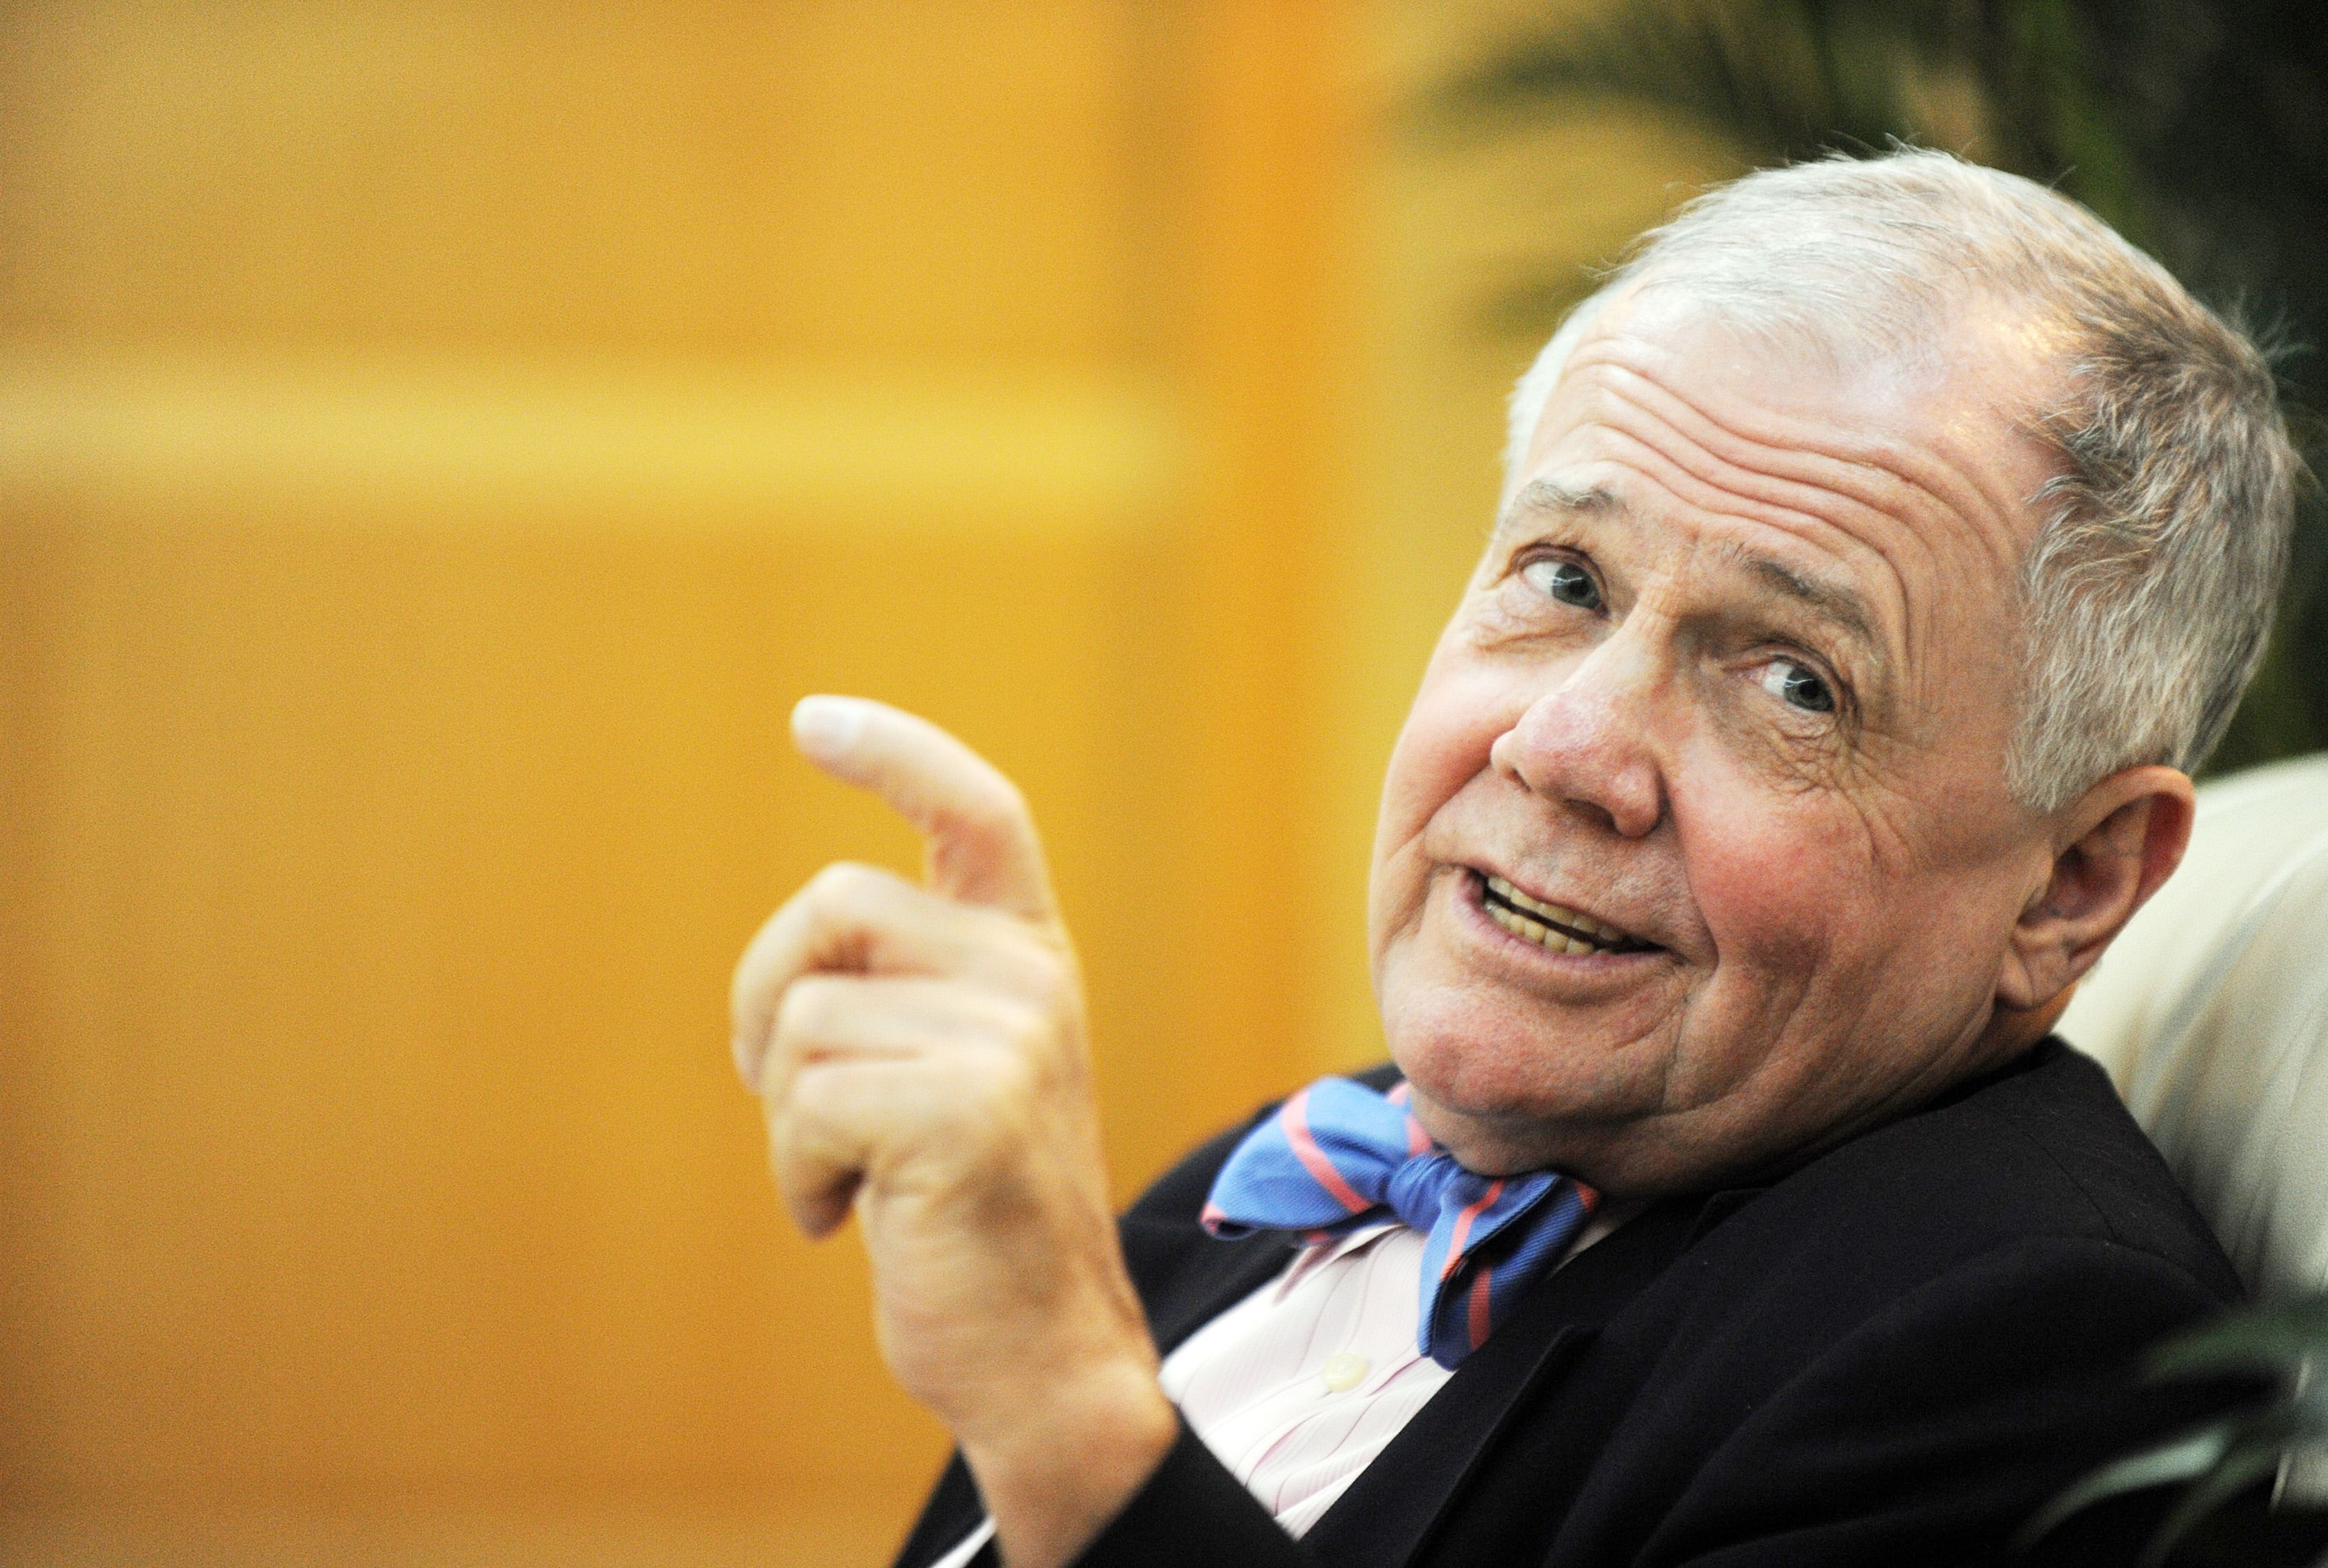 Investment legend Jim Rogers was raised in Alabama but is now based in Singapore, where his daughters are learning Mandarin. (AFP photo)